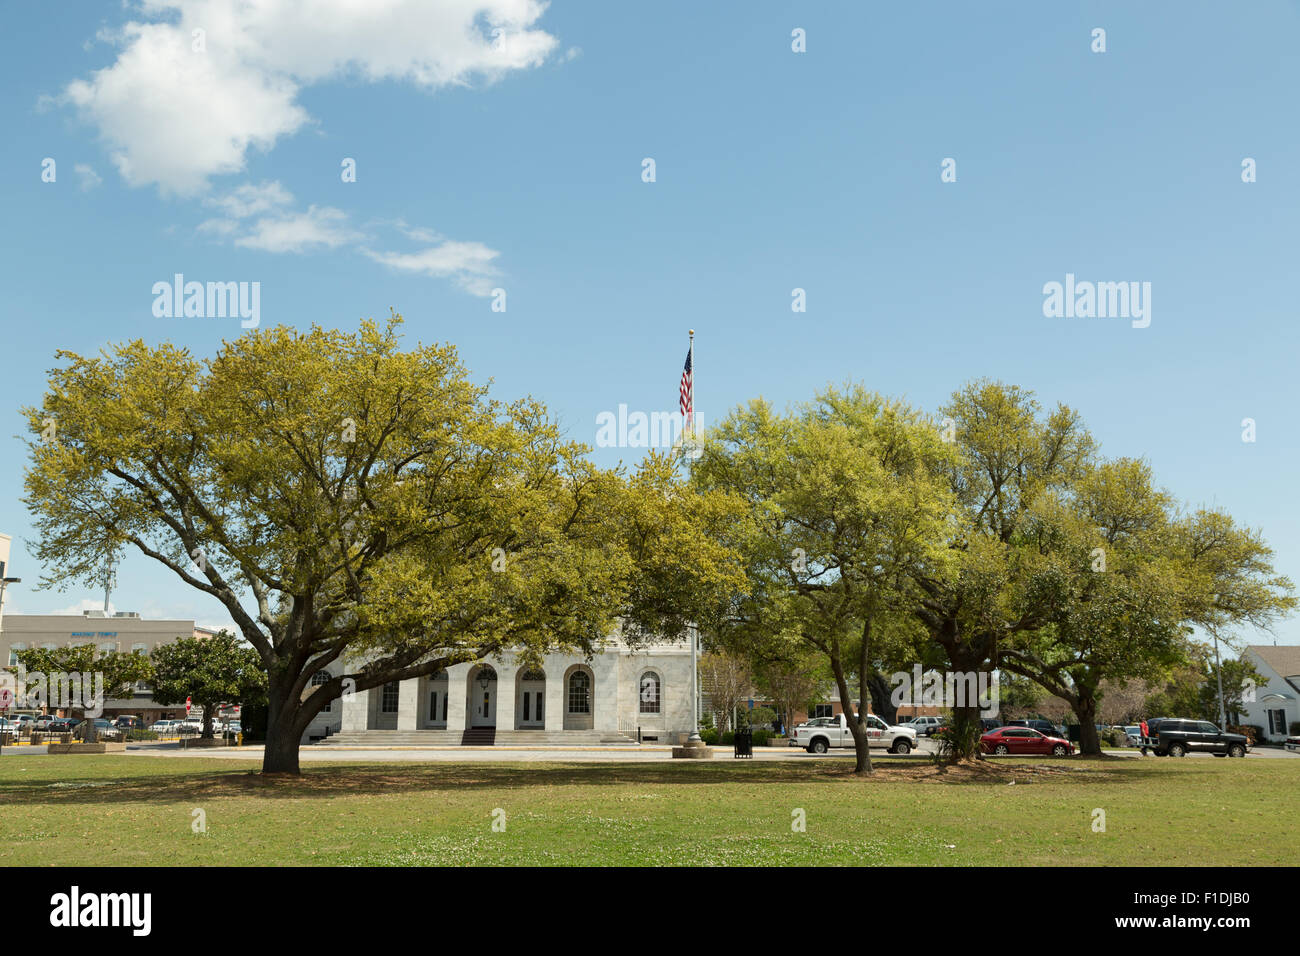 A Photograph Of City Hall In Downtown Biloxi Mississippi Usa Stock Photo 86966292 Alamy